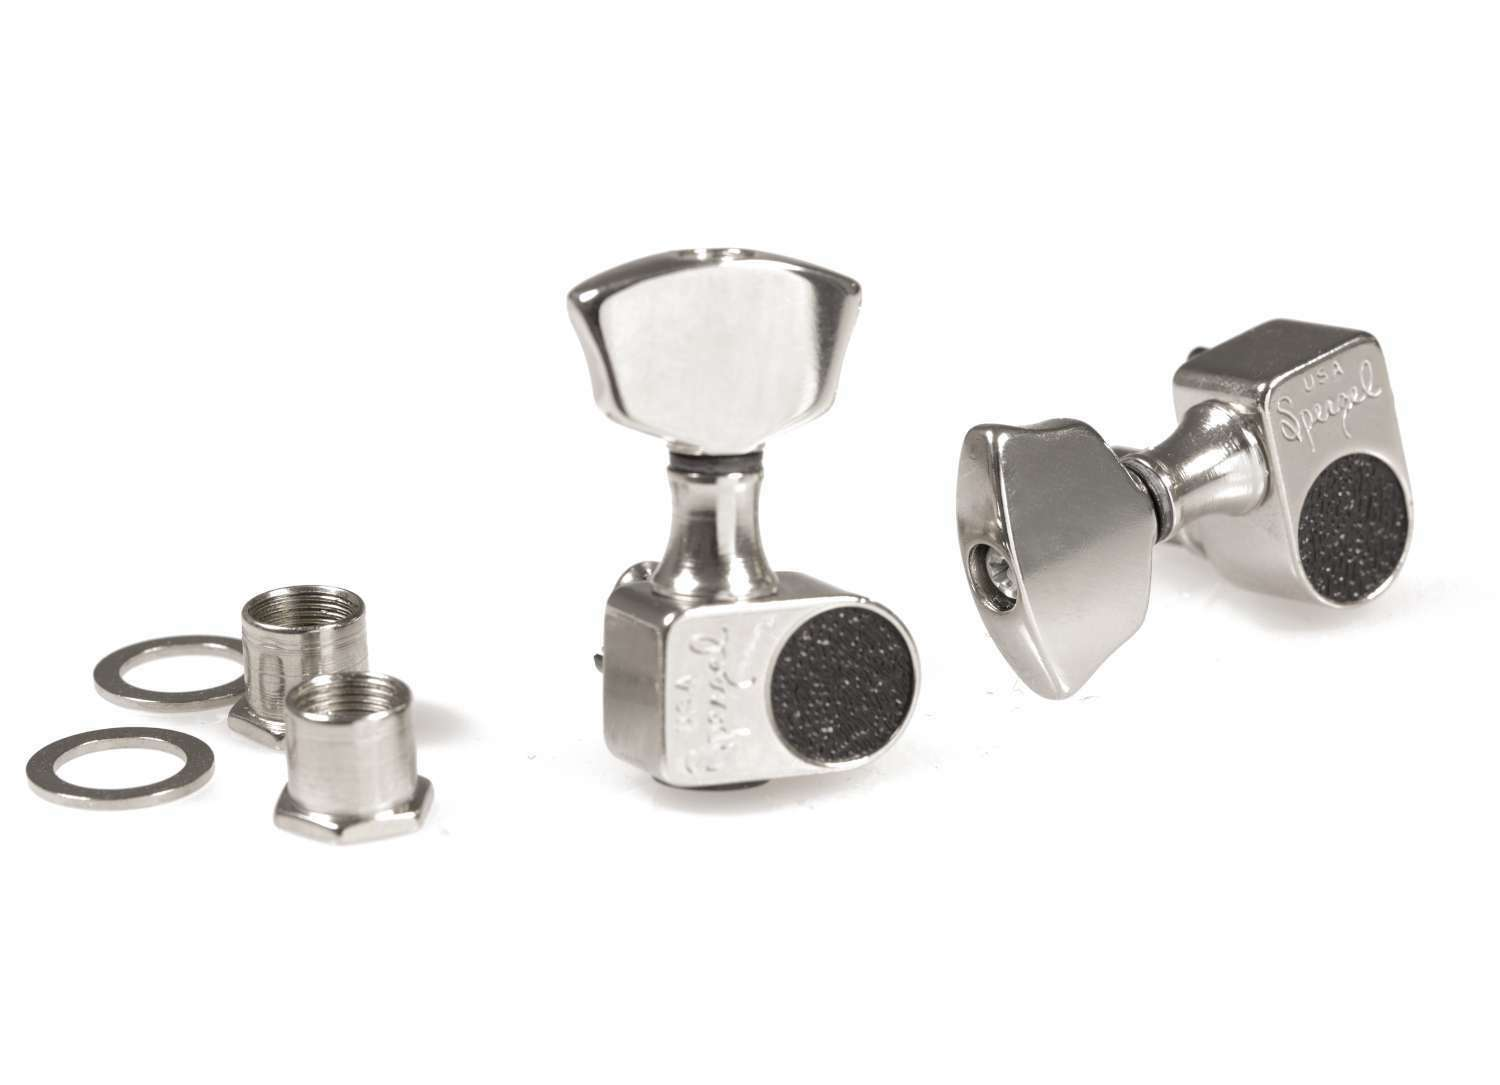 Genuine Sperzel USA Solid Pro 3x3 Chrome Plated tuners - Auth Dealer NEW